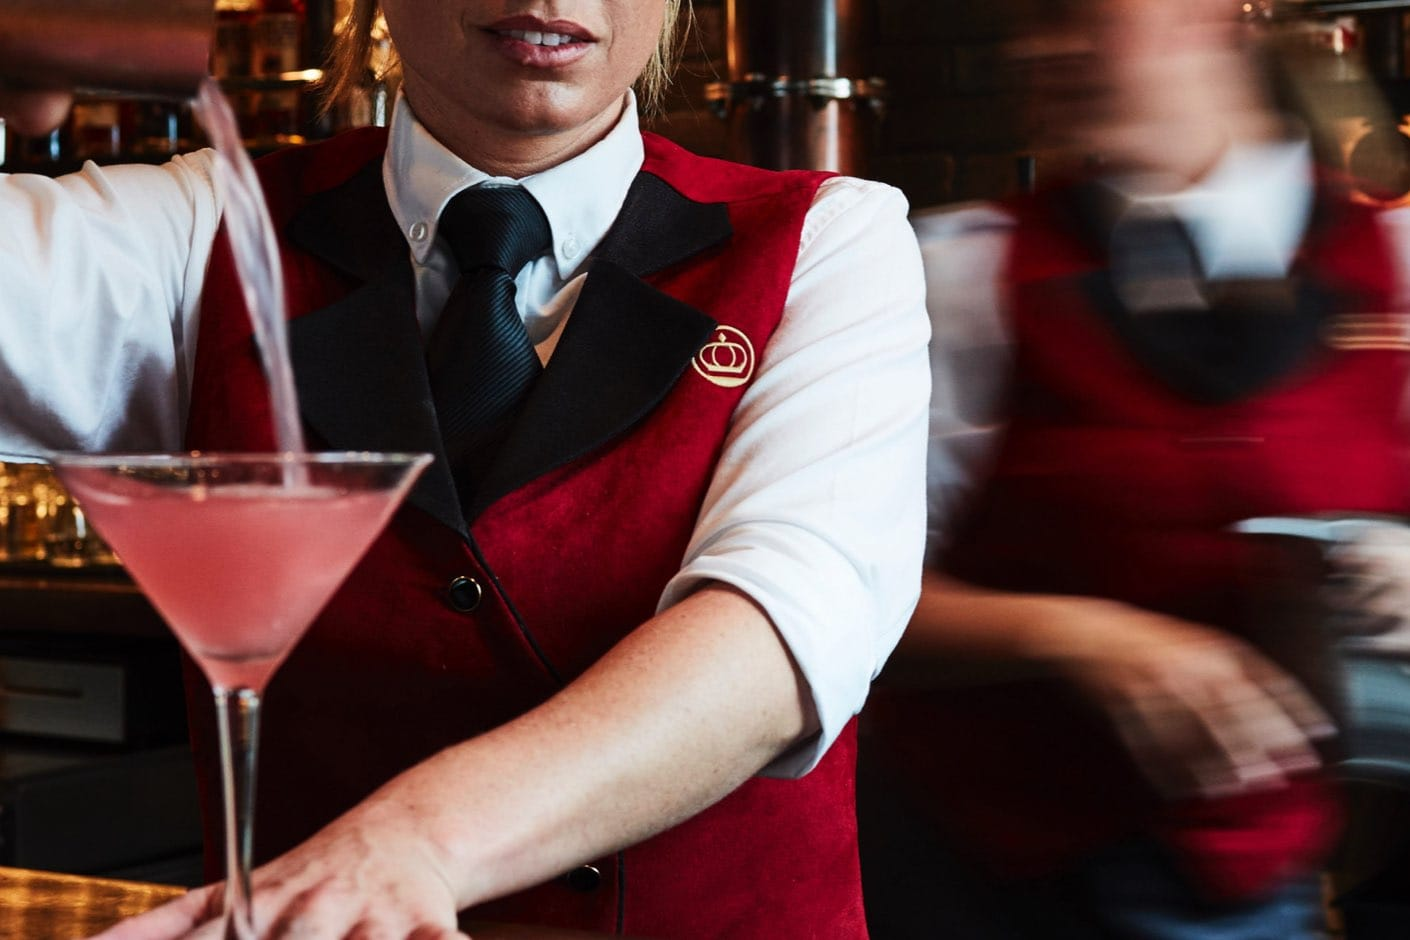 bartender pouring a pink martini